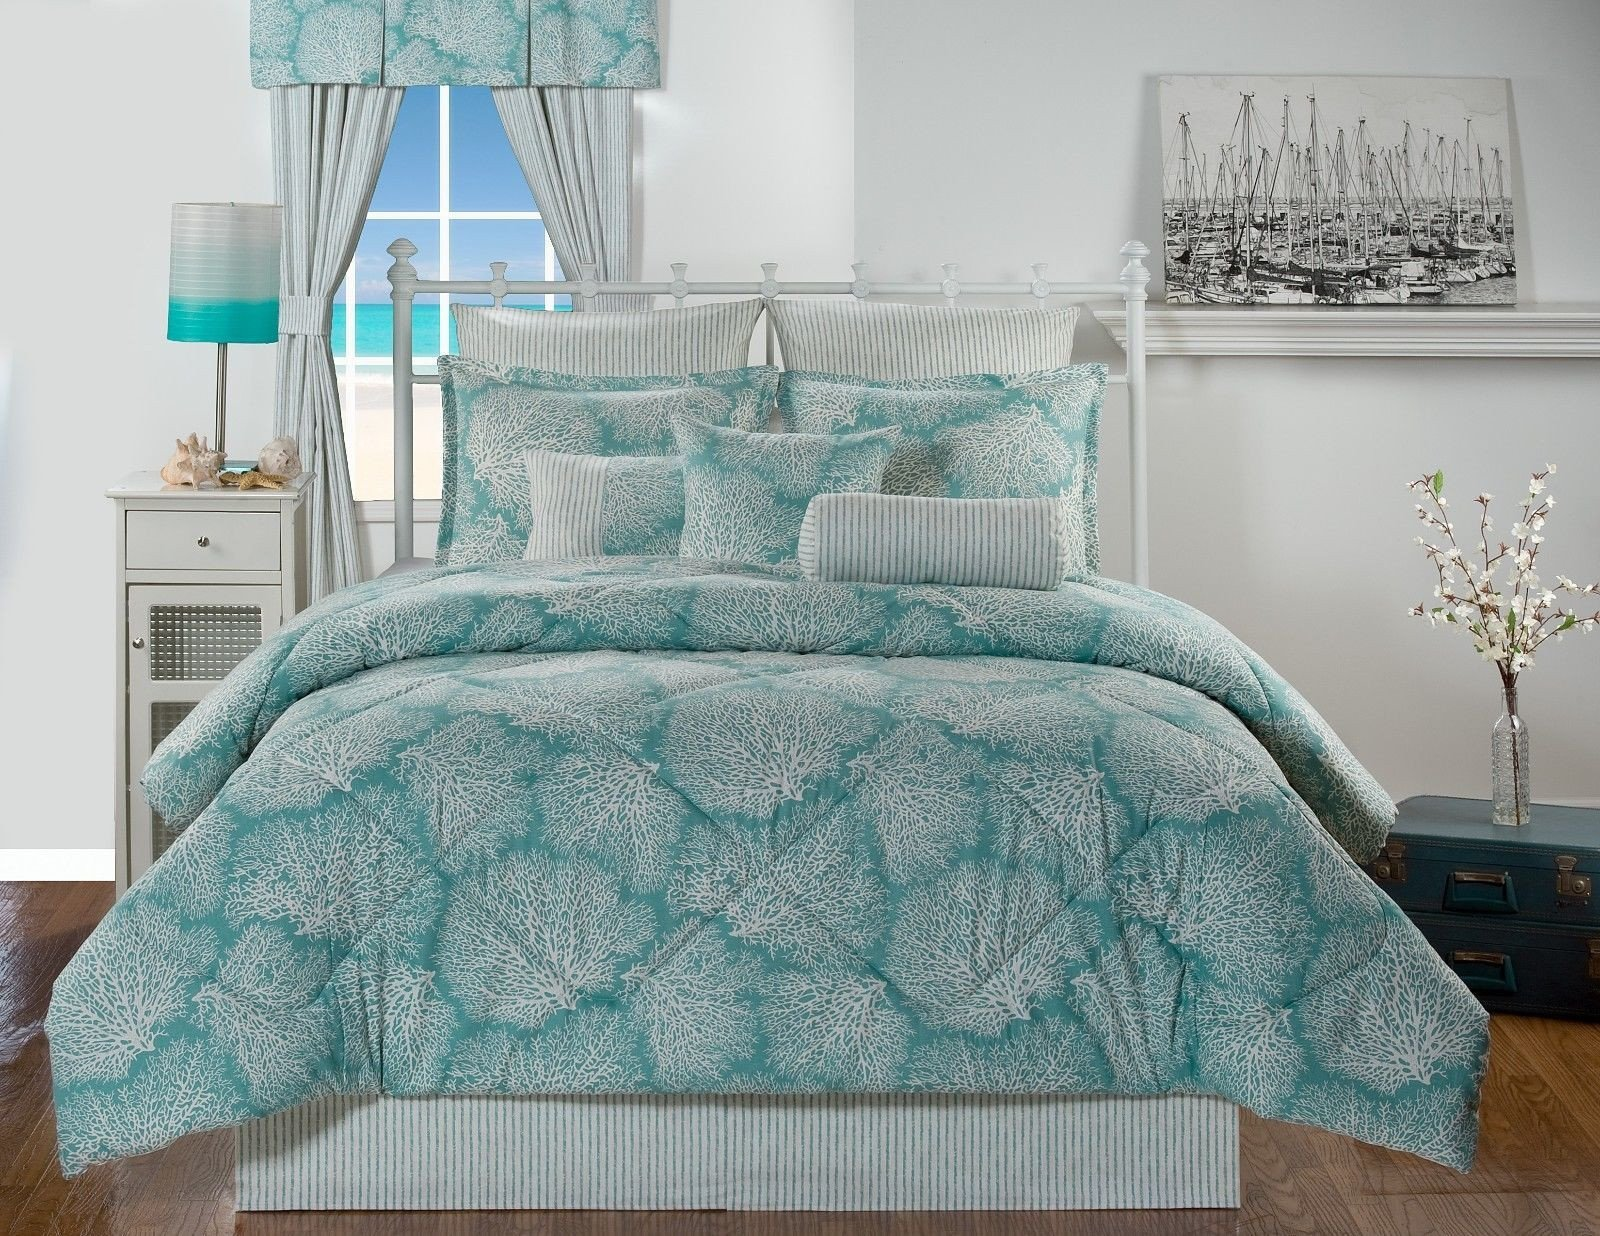 Coral and Teal Bedroom Beautiful Tybee island Ocean Coral Turquoise Coastal Beach Bedding